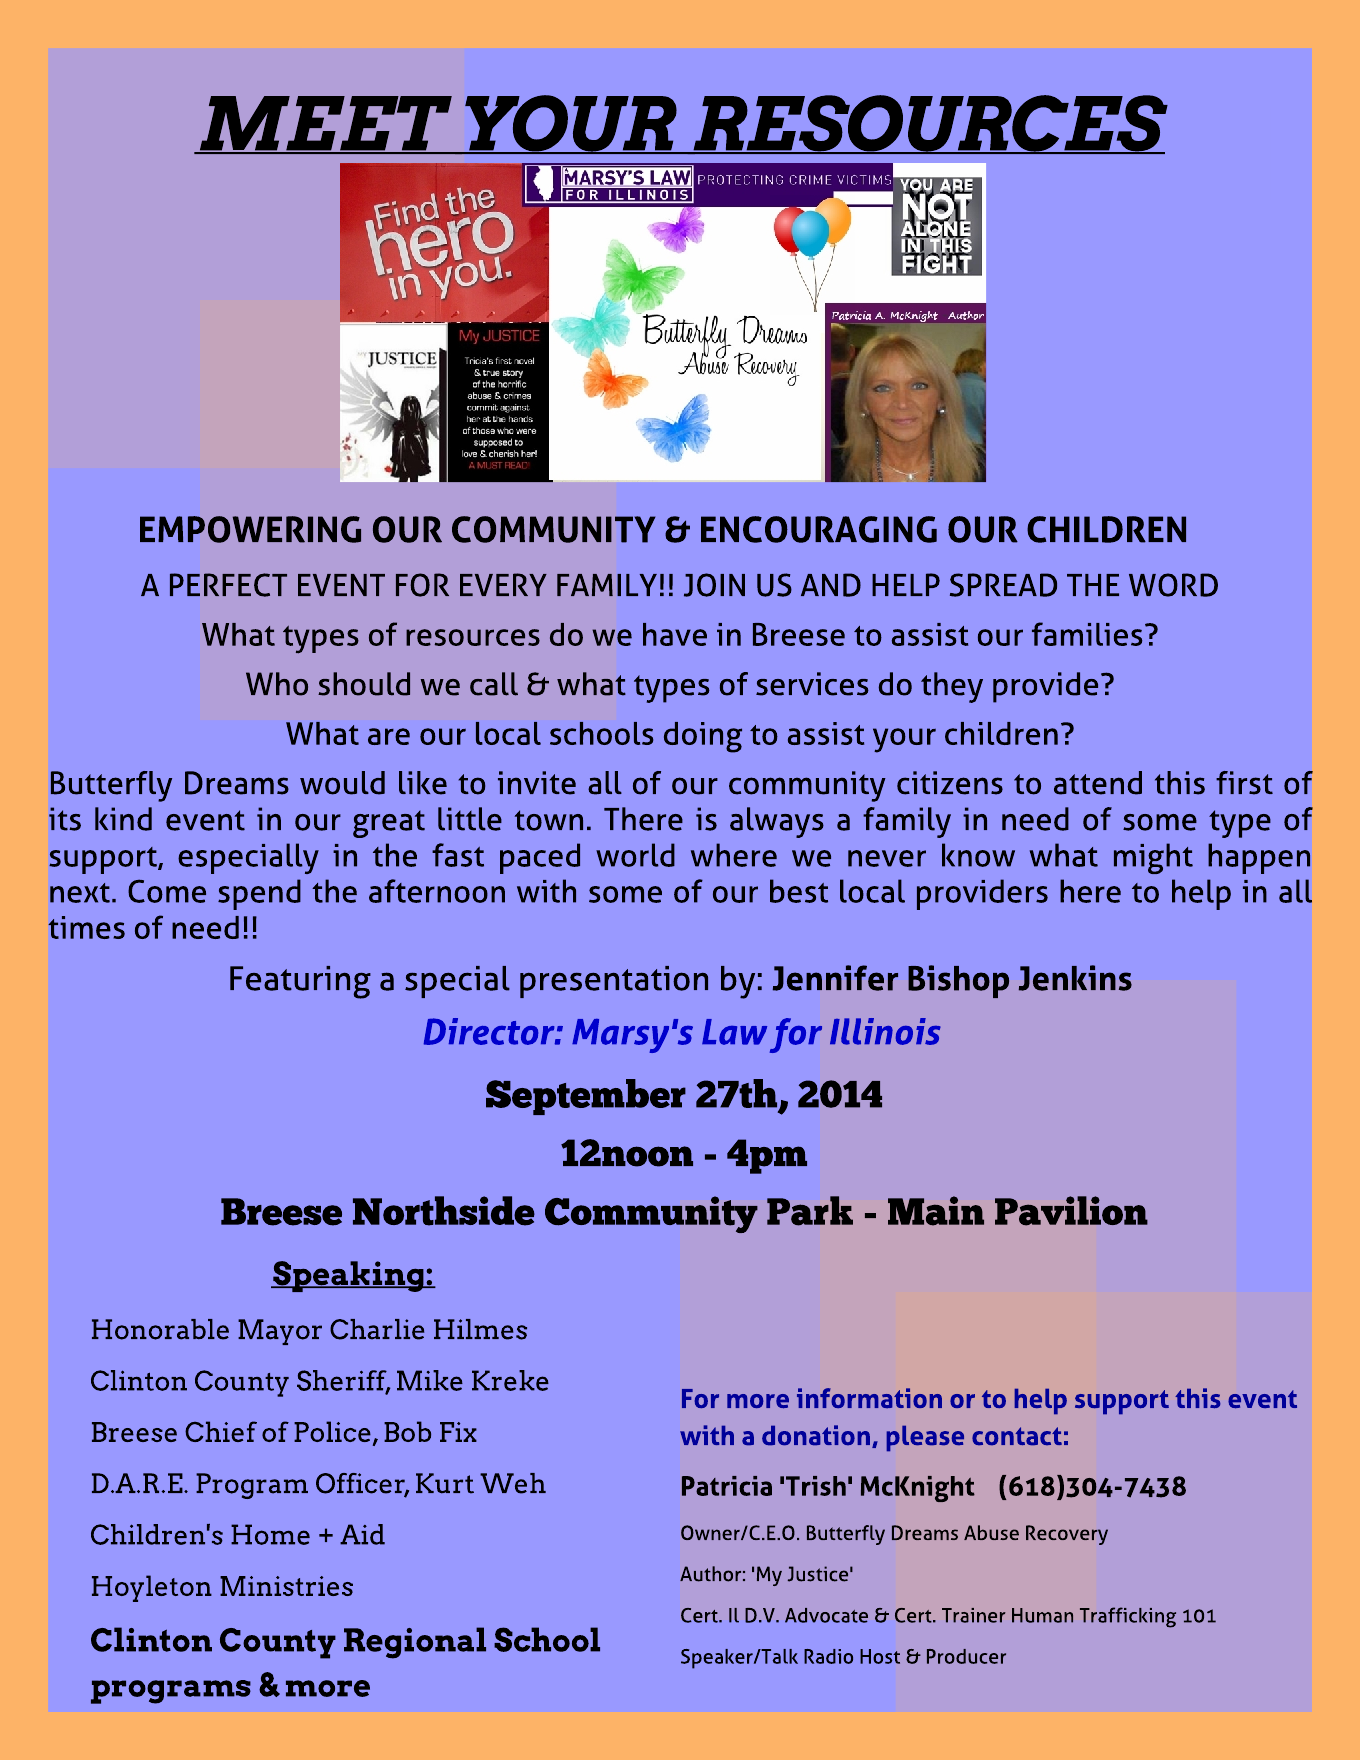 Illinois clinton county aviston - Butterfly Dreams Presents Meet Your Resources Patricia Mcknight My Justice